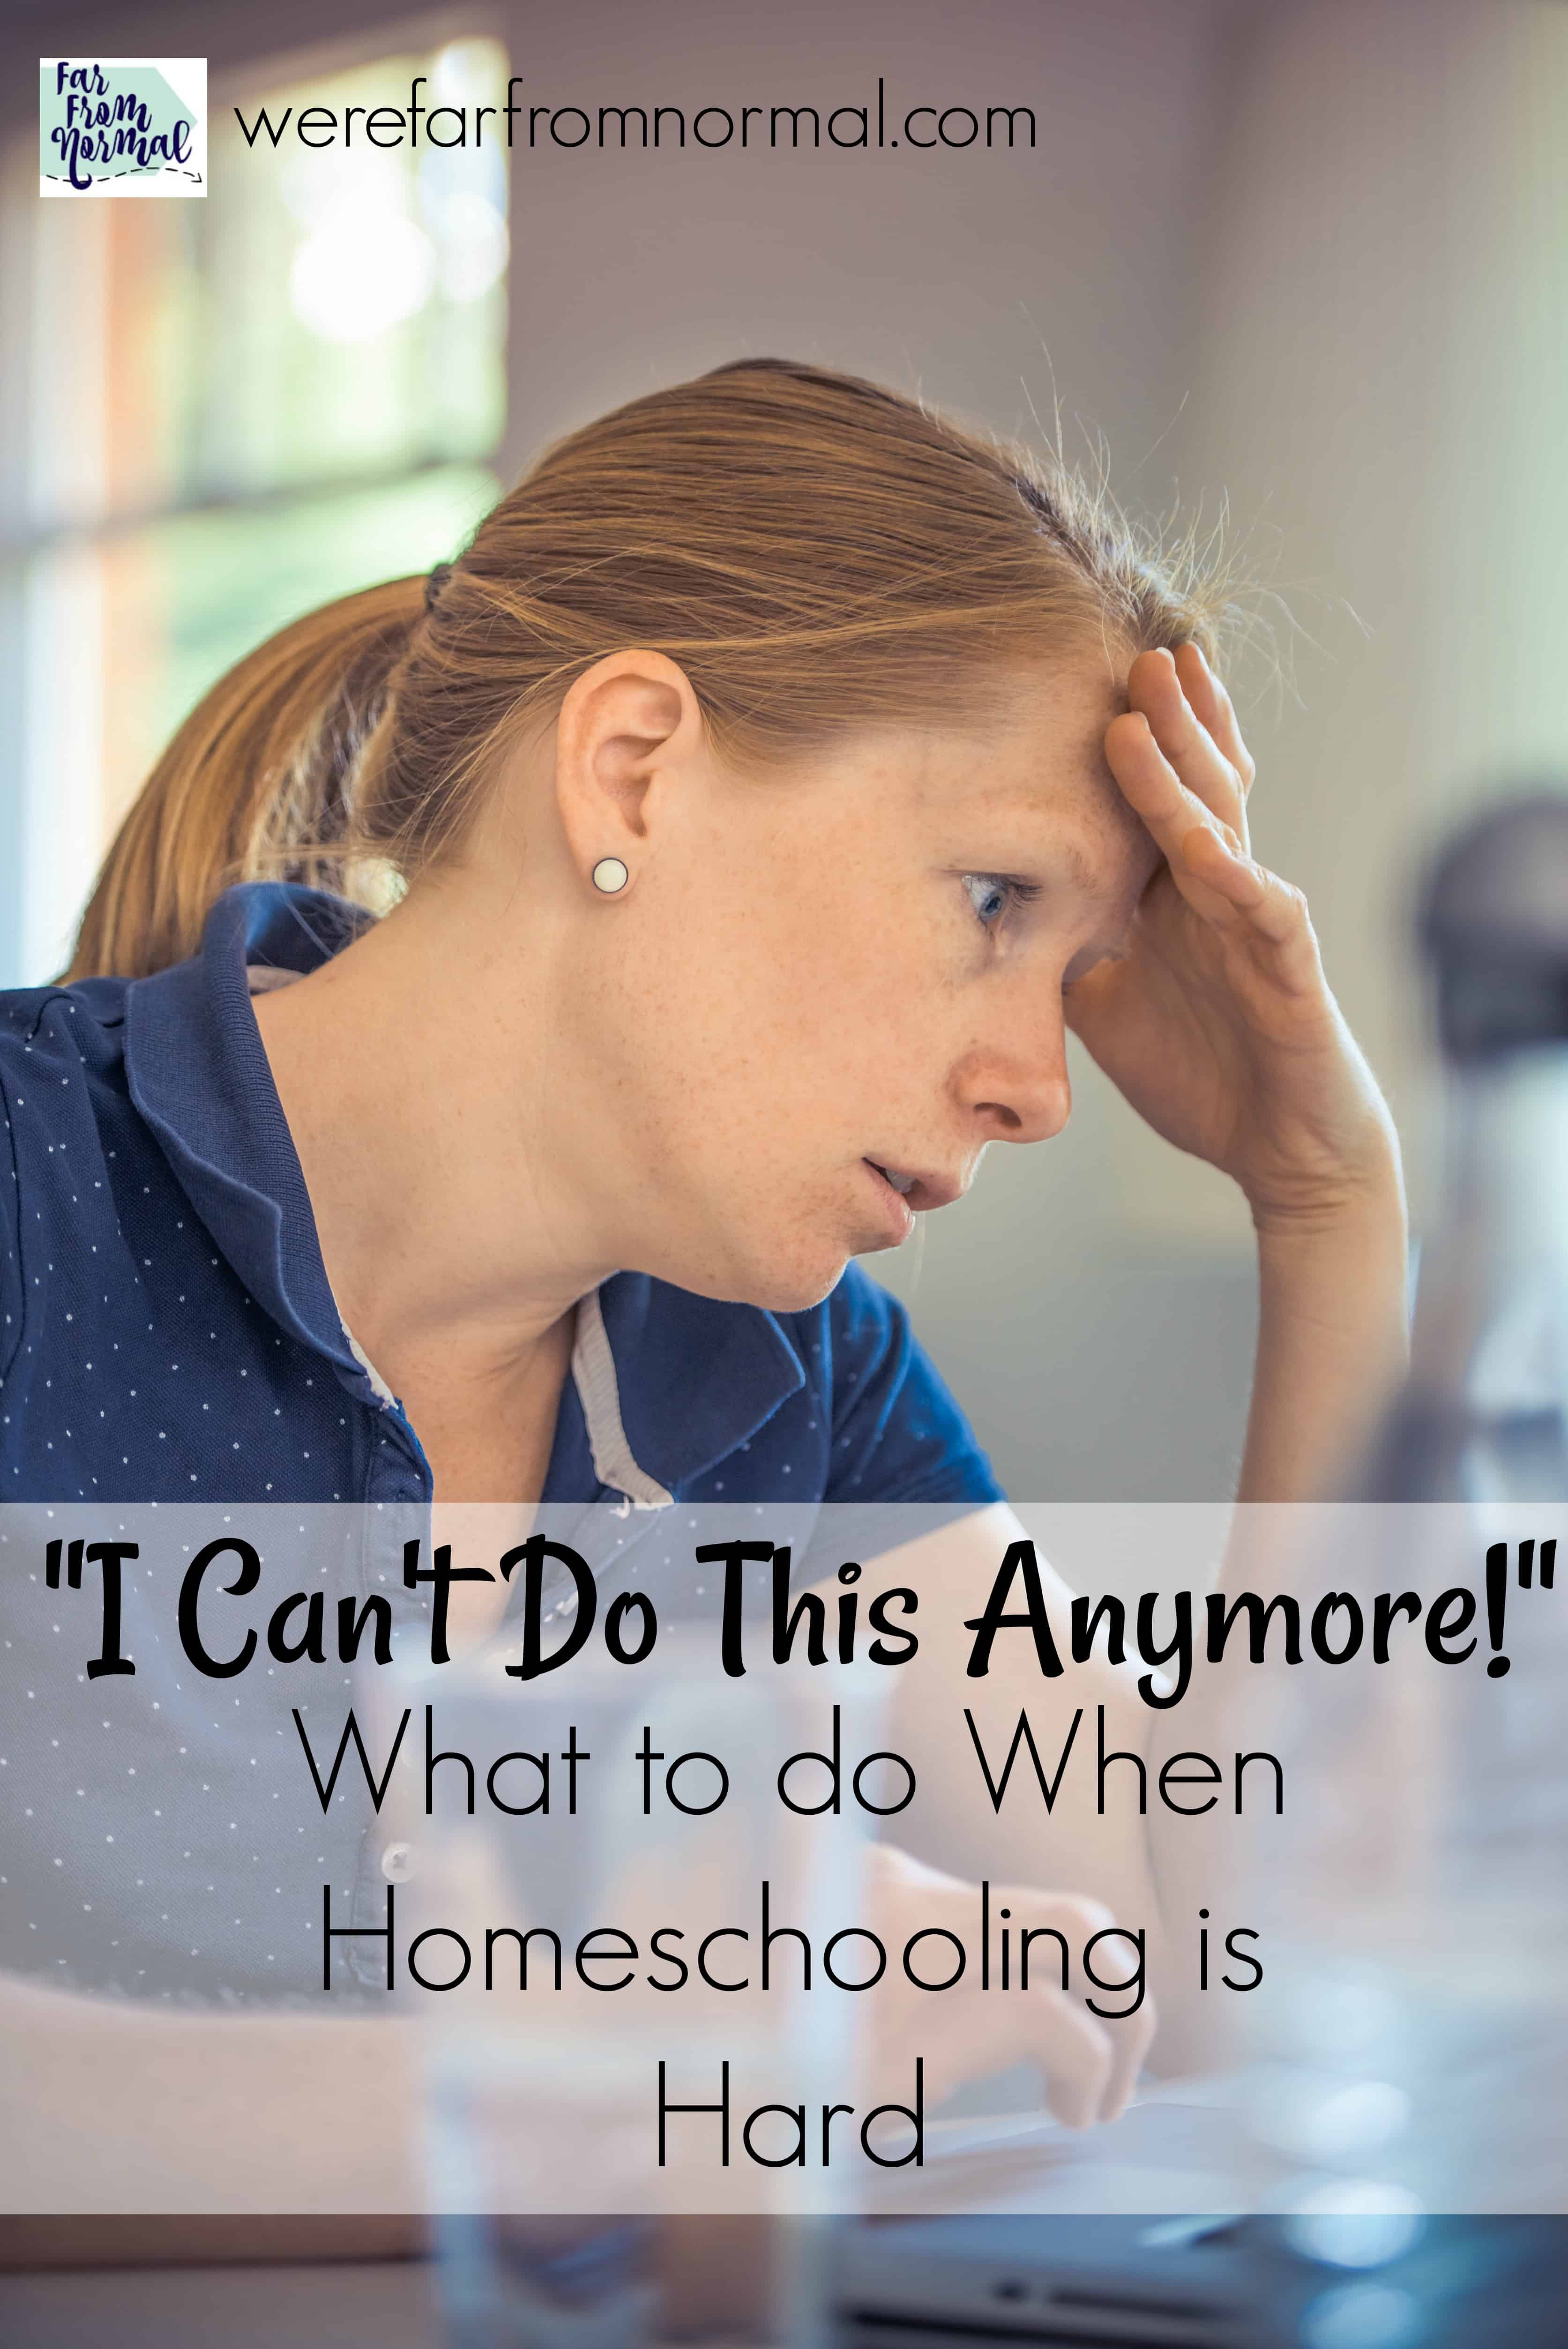 """I Can't Do This Anymore!!"" What to do When Homeschooling is Hard"